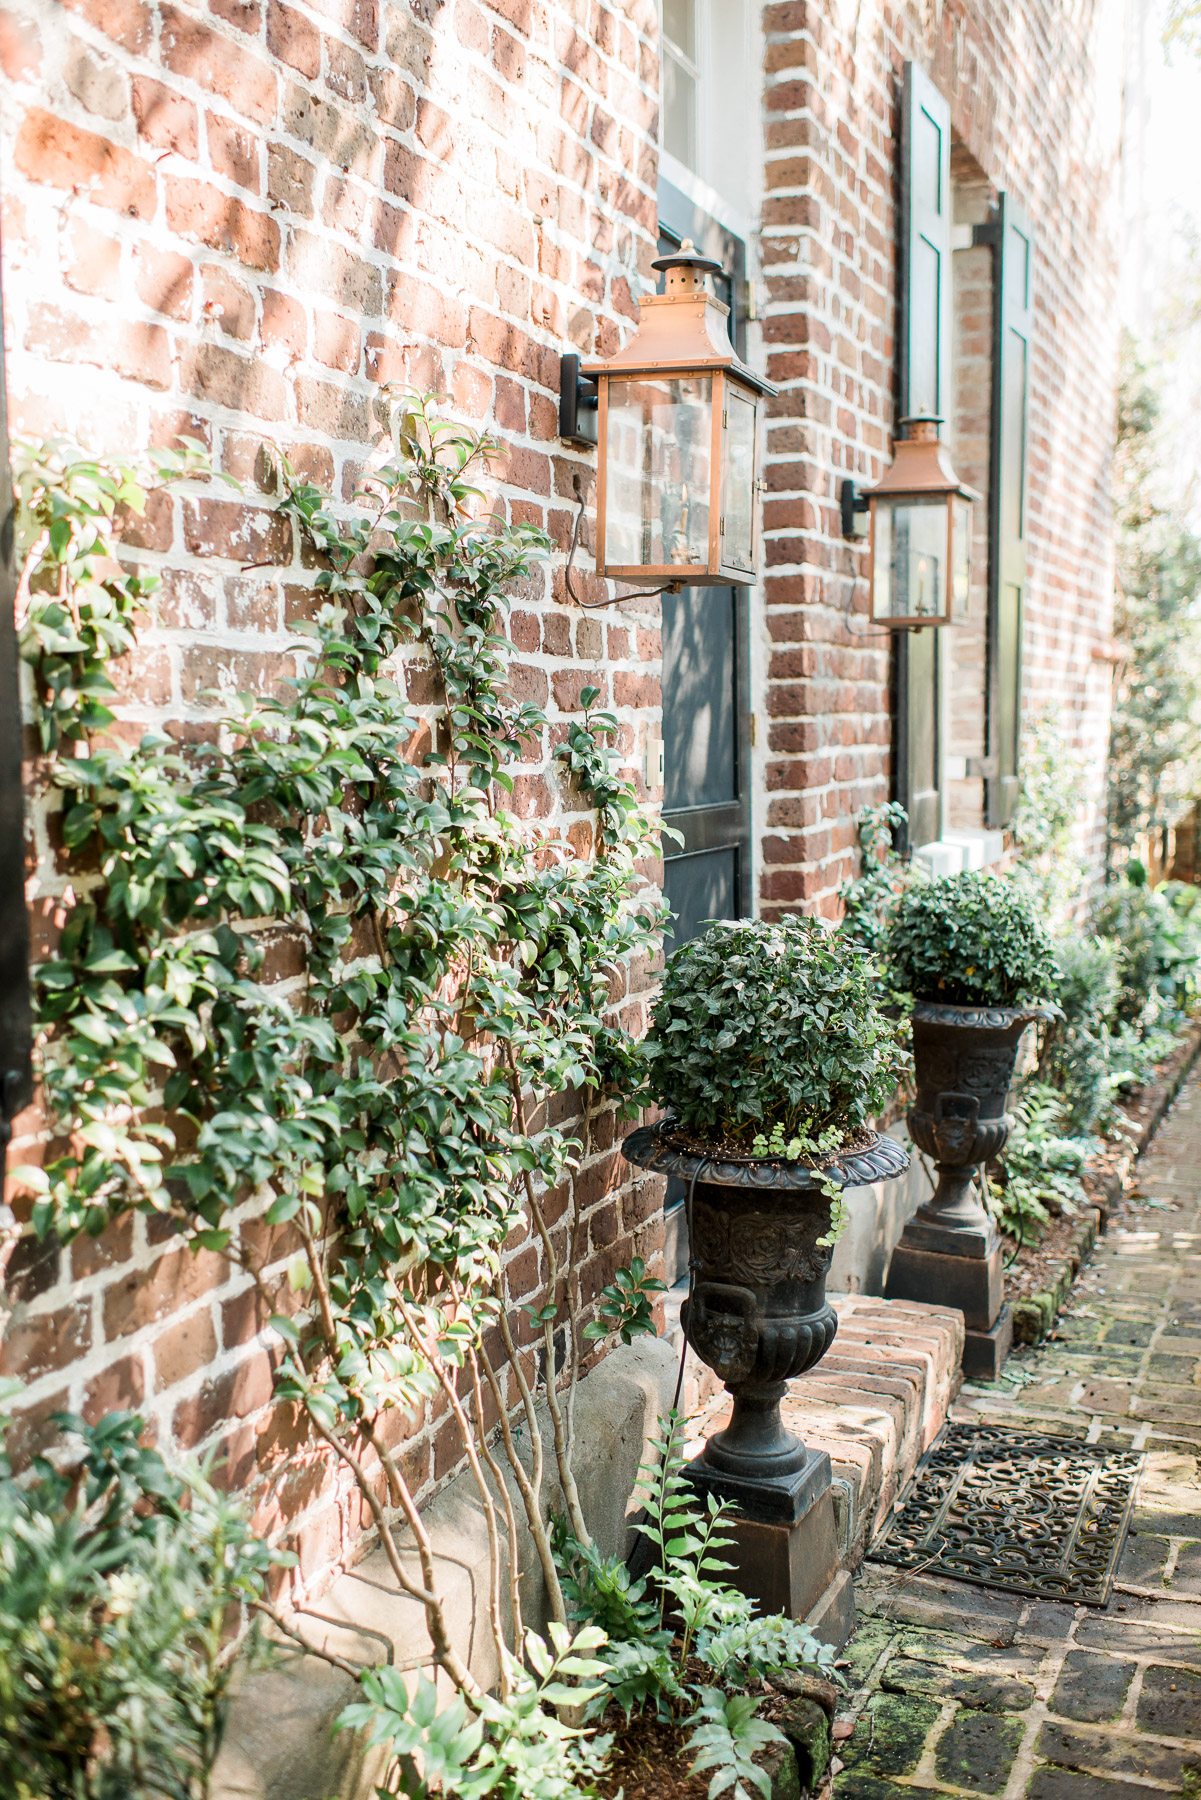 KateTaramykinStudios-Travel-Photographer-Charleston-South-Carolina-8.jpg